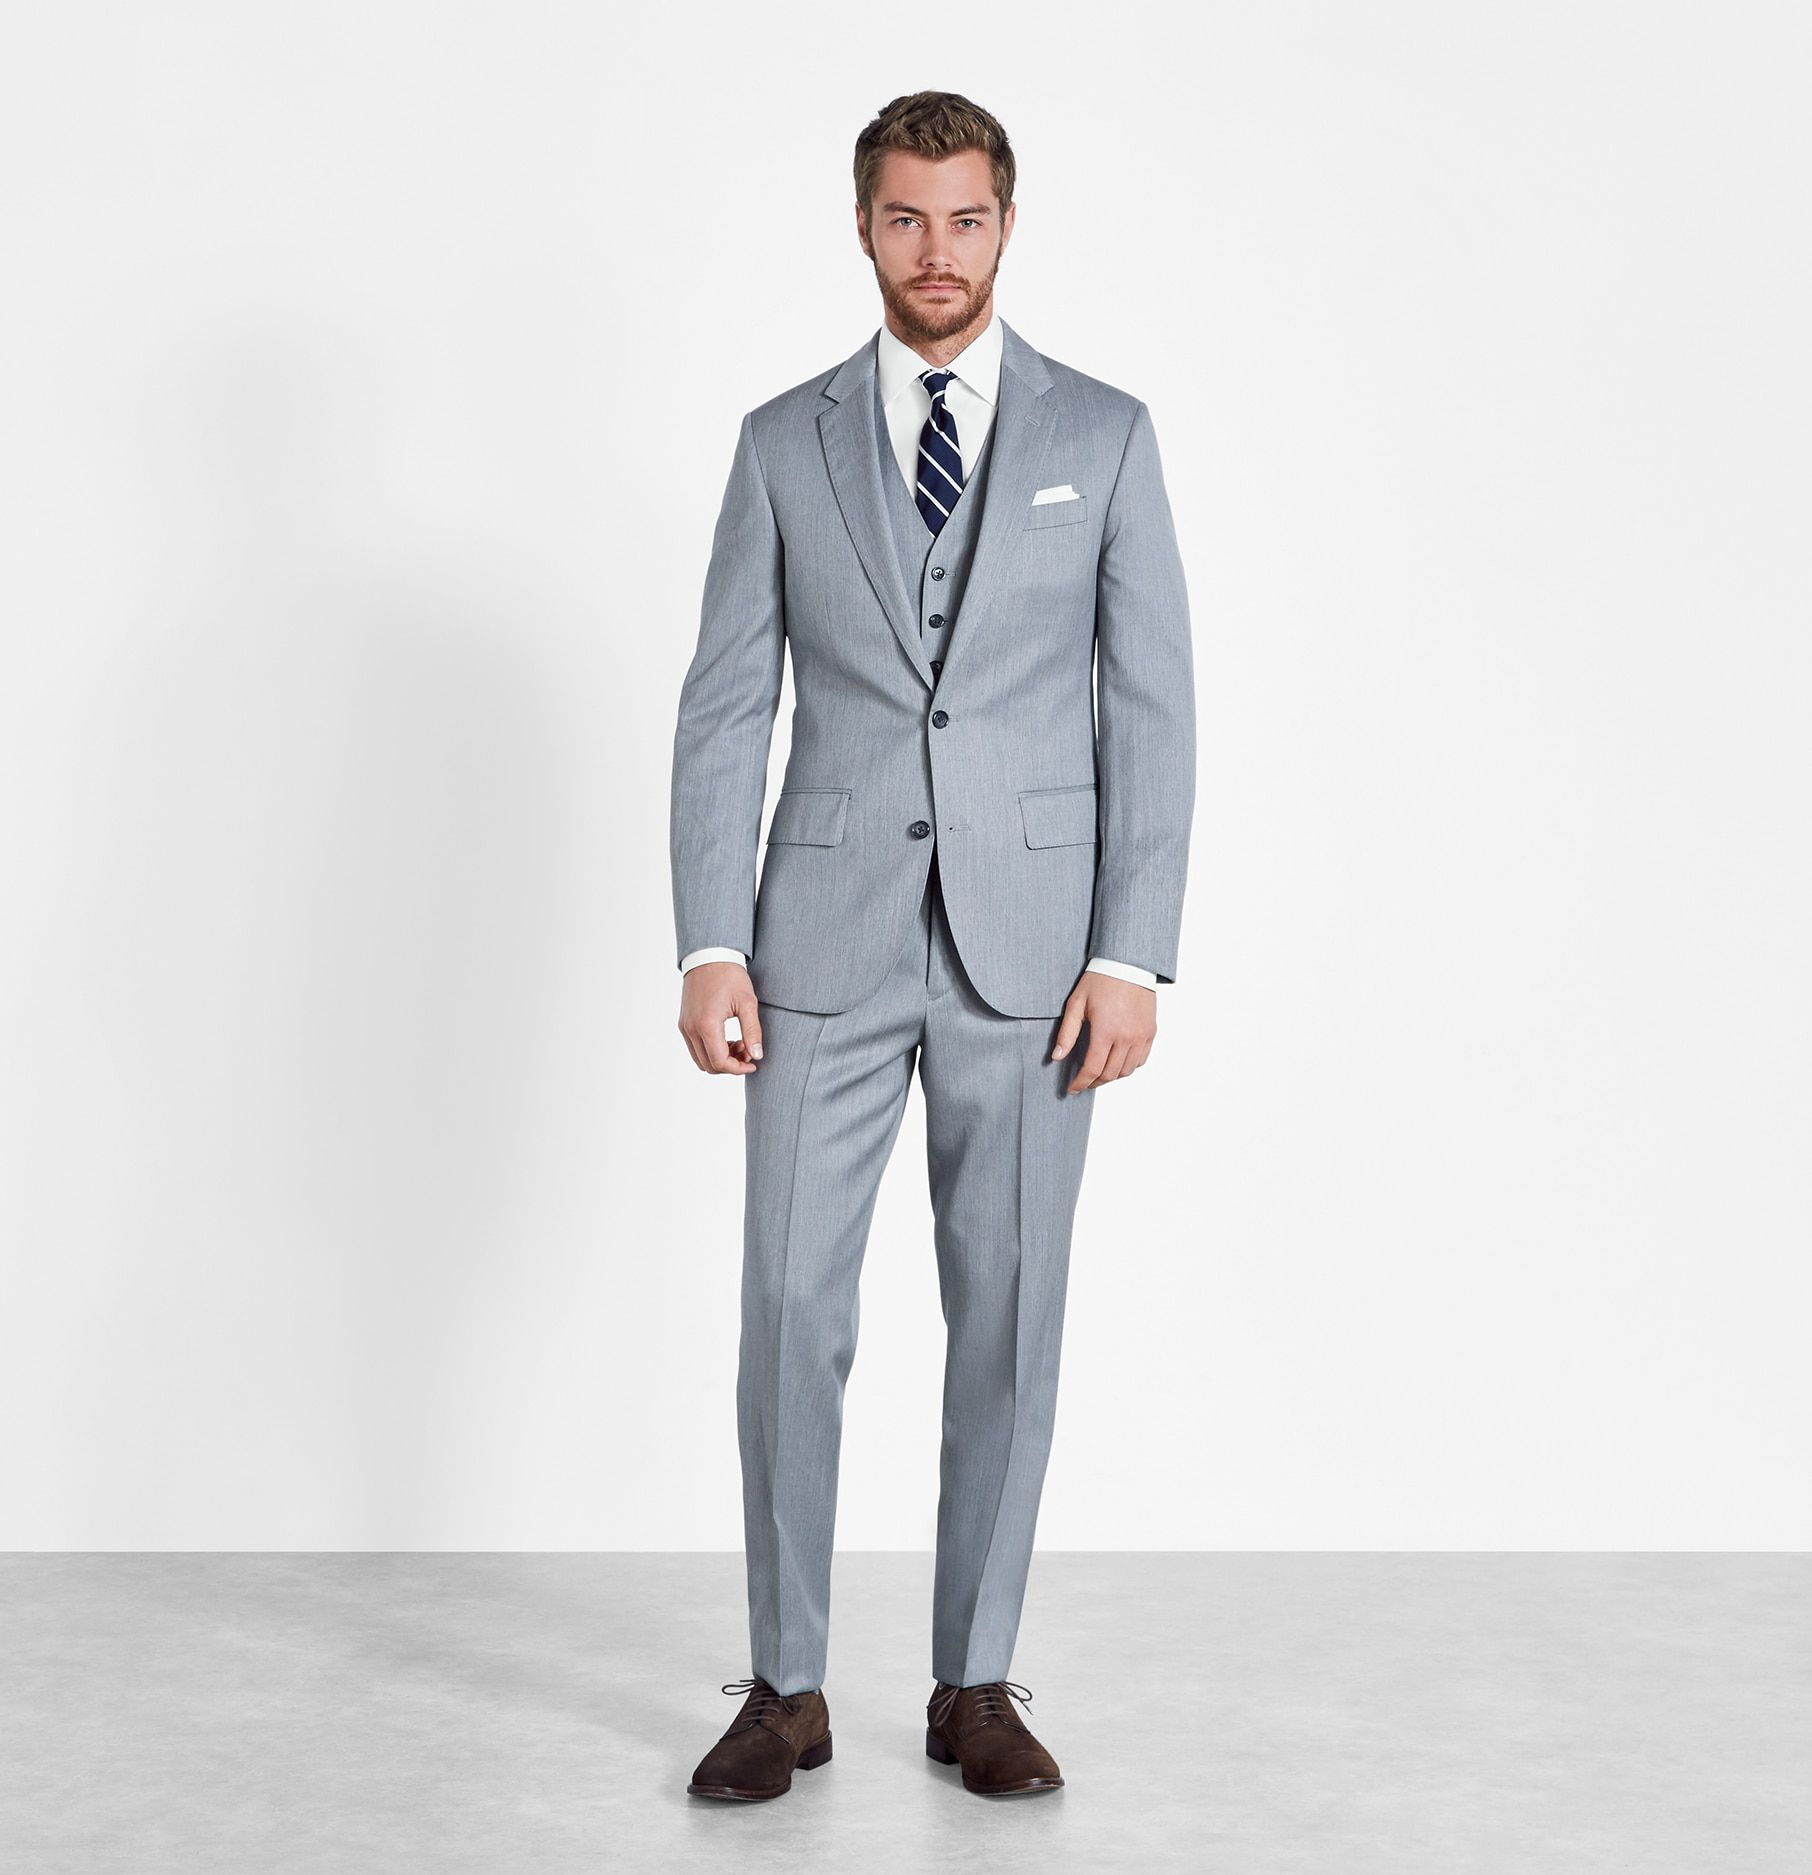 The Ansel Outfit by The Black Tux. Rent for $195 for complete ...